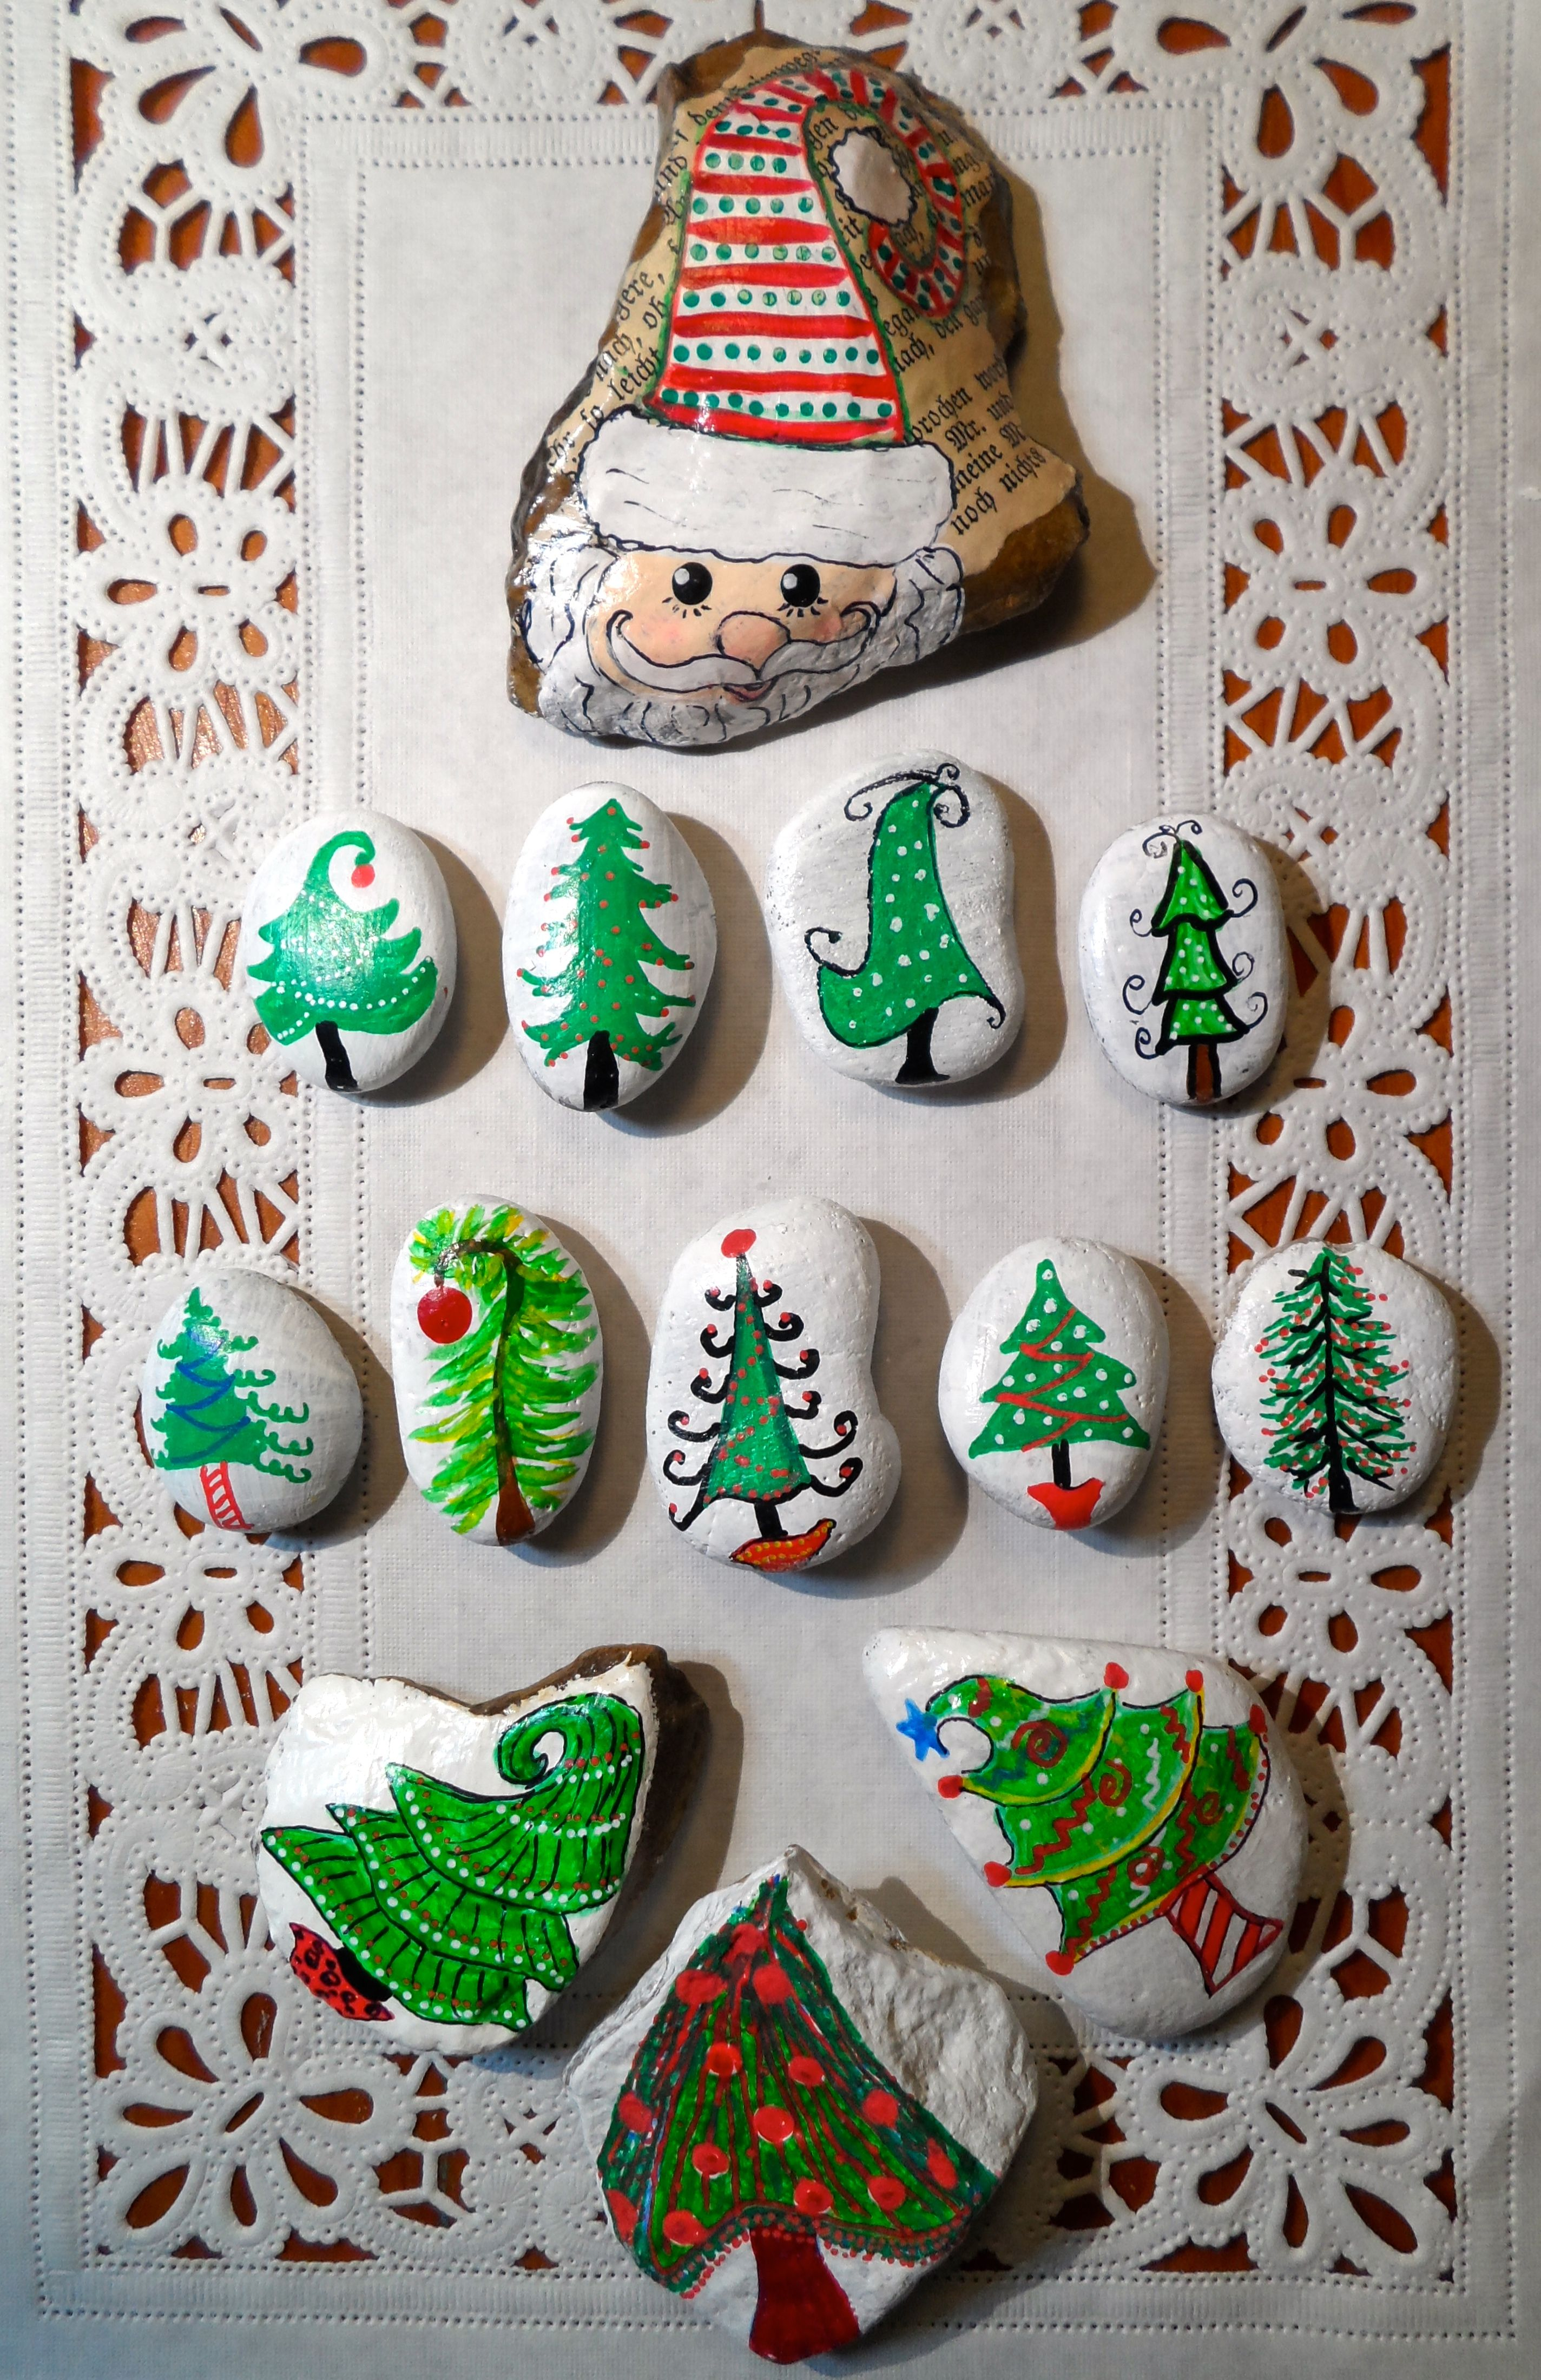 hand painted Santa and Christmas trees on rocks whimsical fun MBR